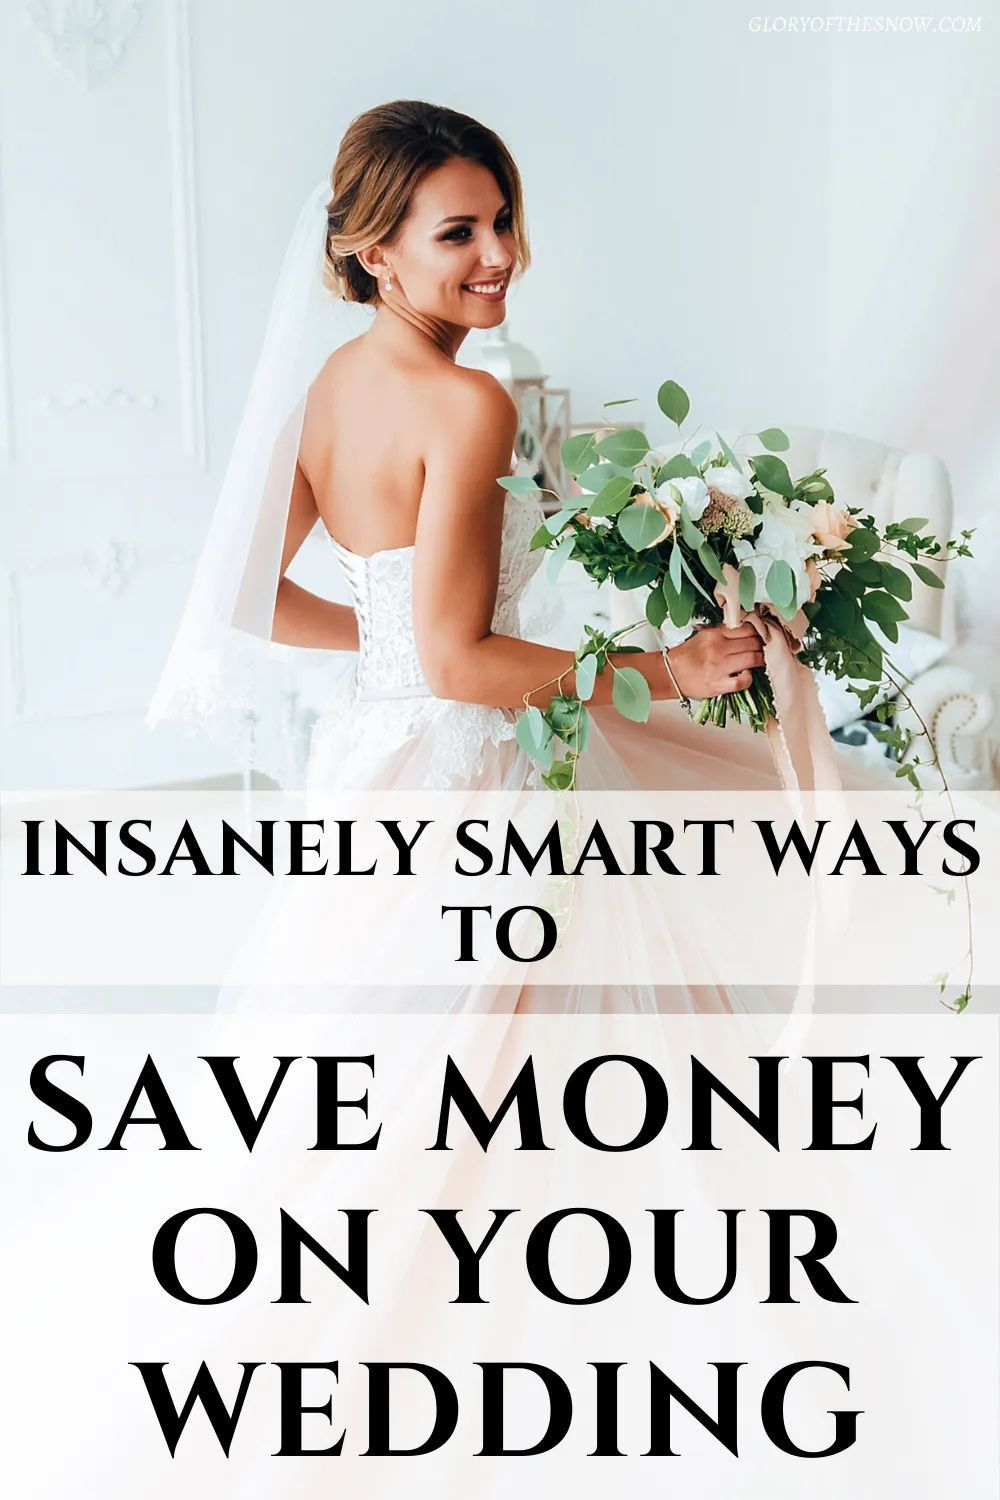 Insanely Smart Ways To Save Money On Your Wedding In 2020 Inexpensive Wedding Lifestyle Blogger Wedding